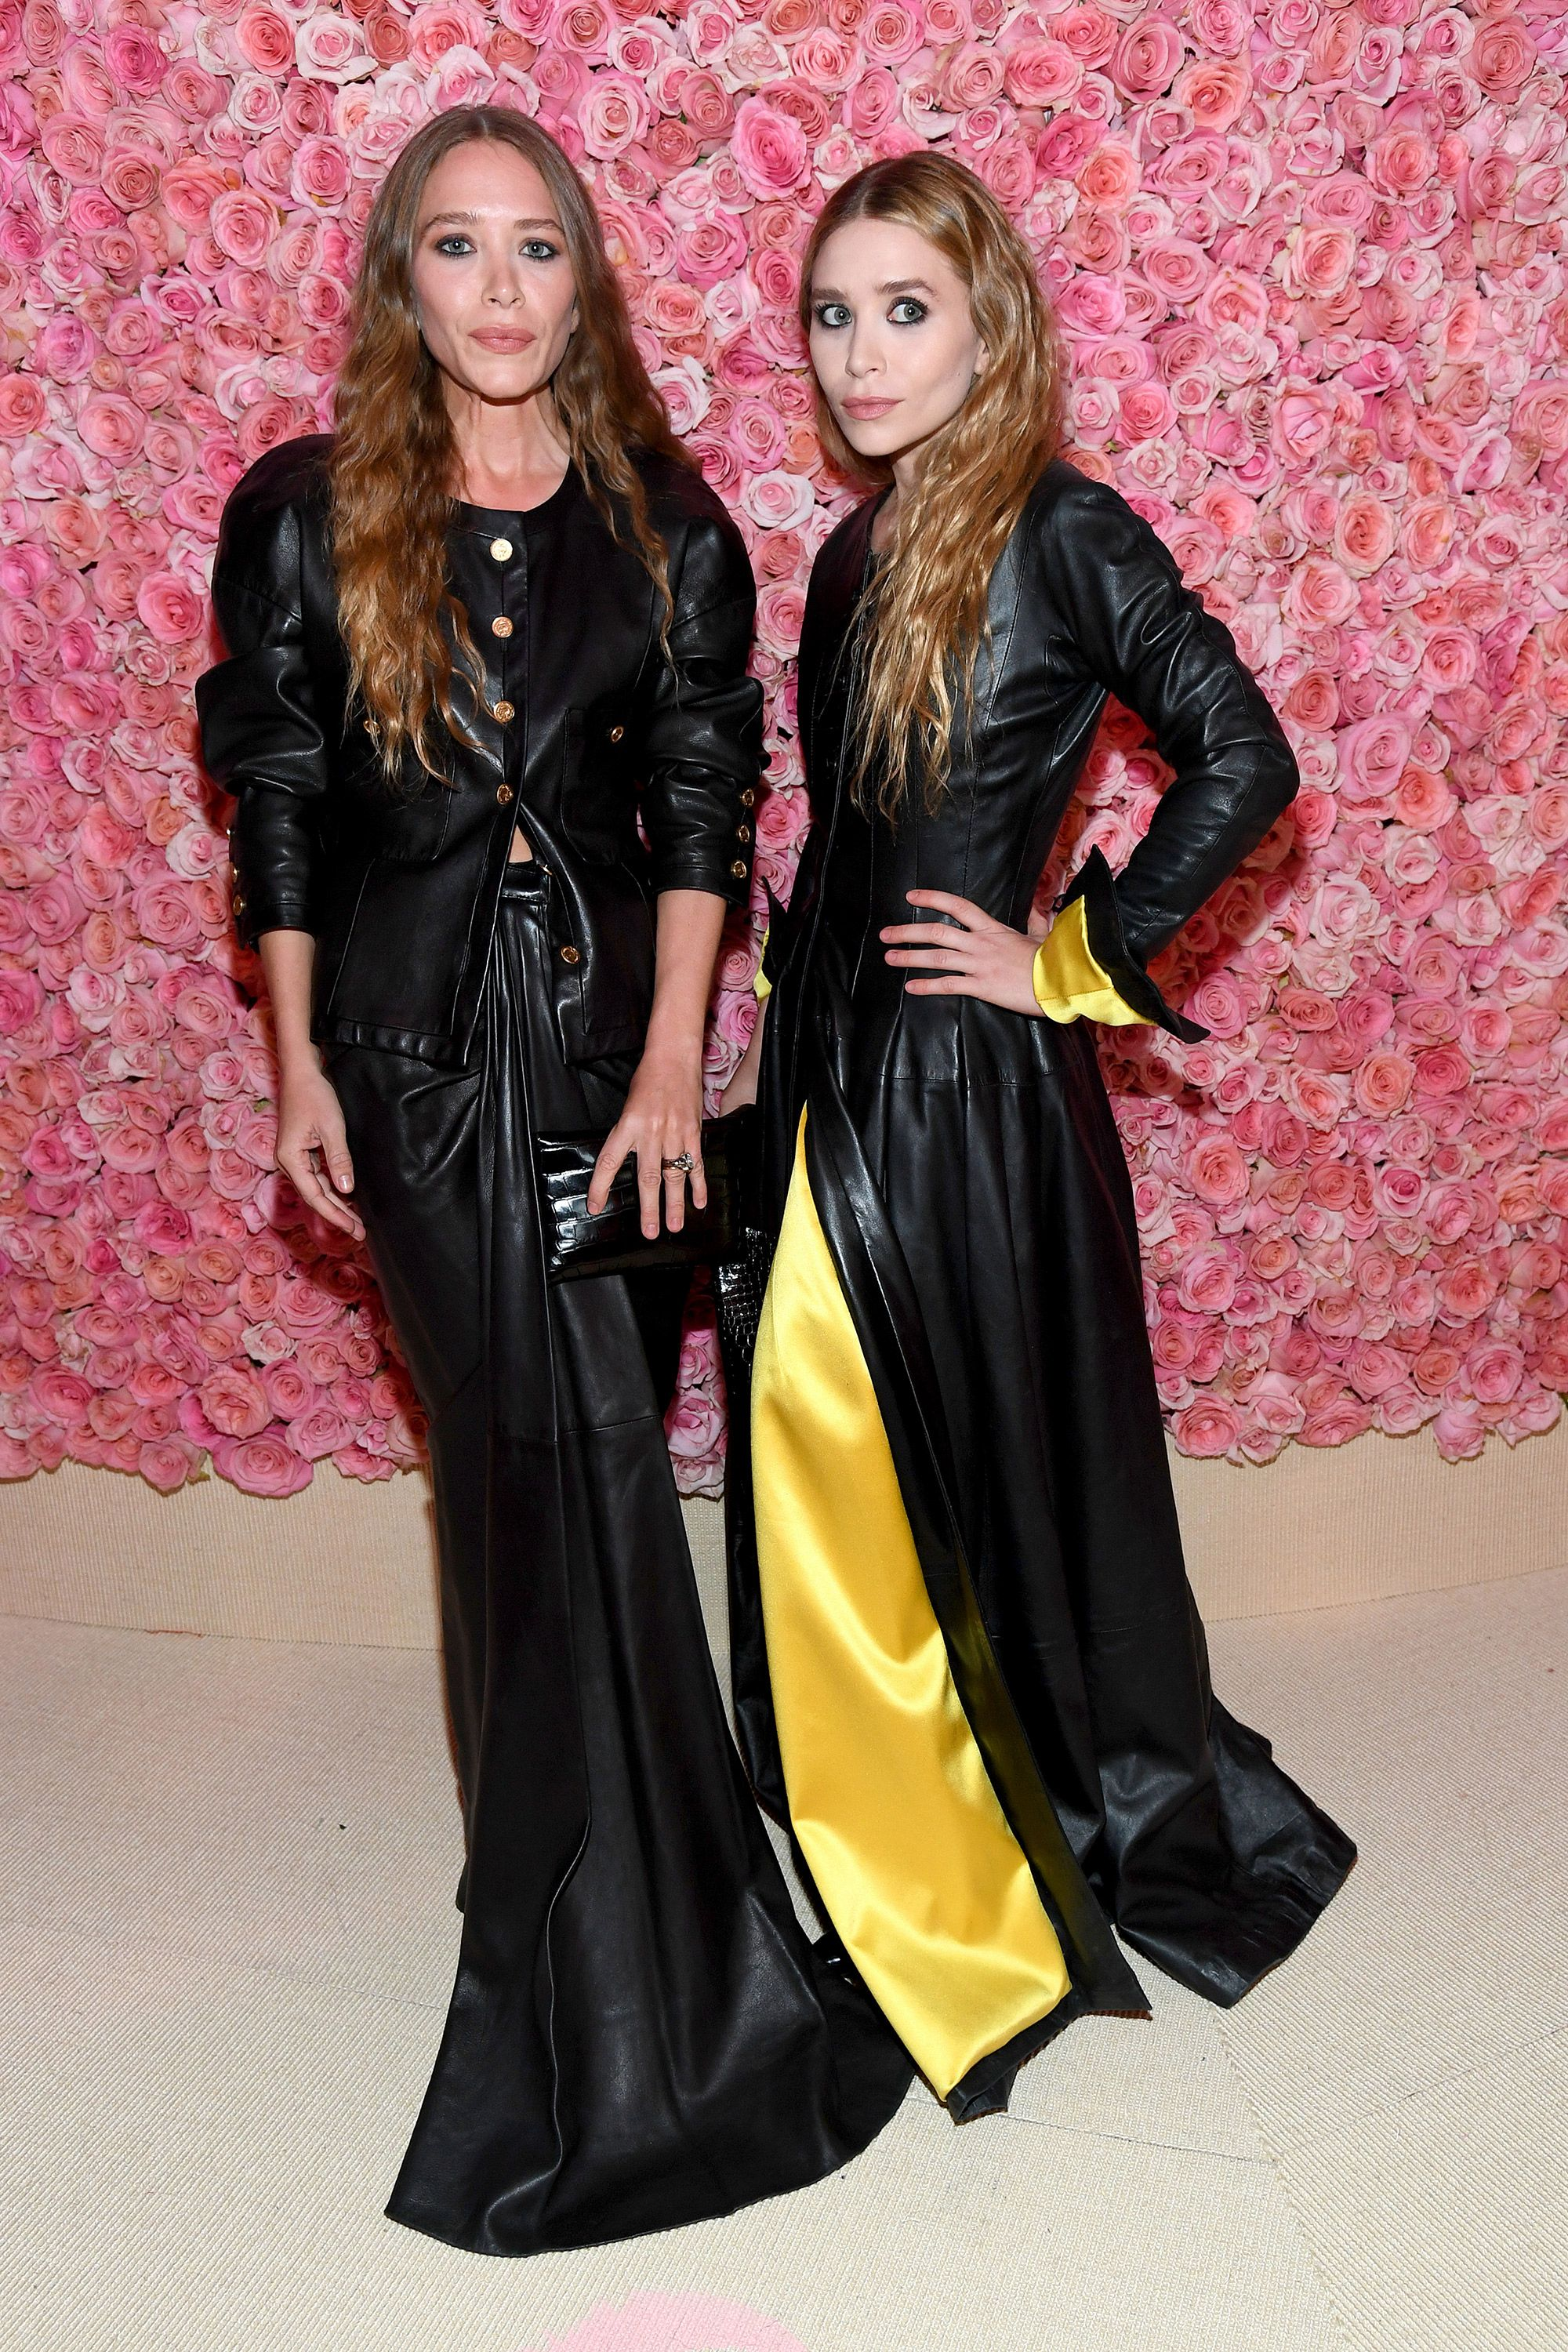 Mary-Kate and Ashley Olsen The world's most famous twins always attend the Met Gala together.